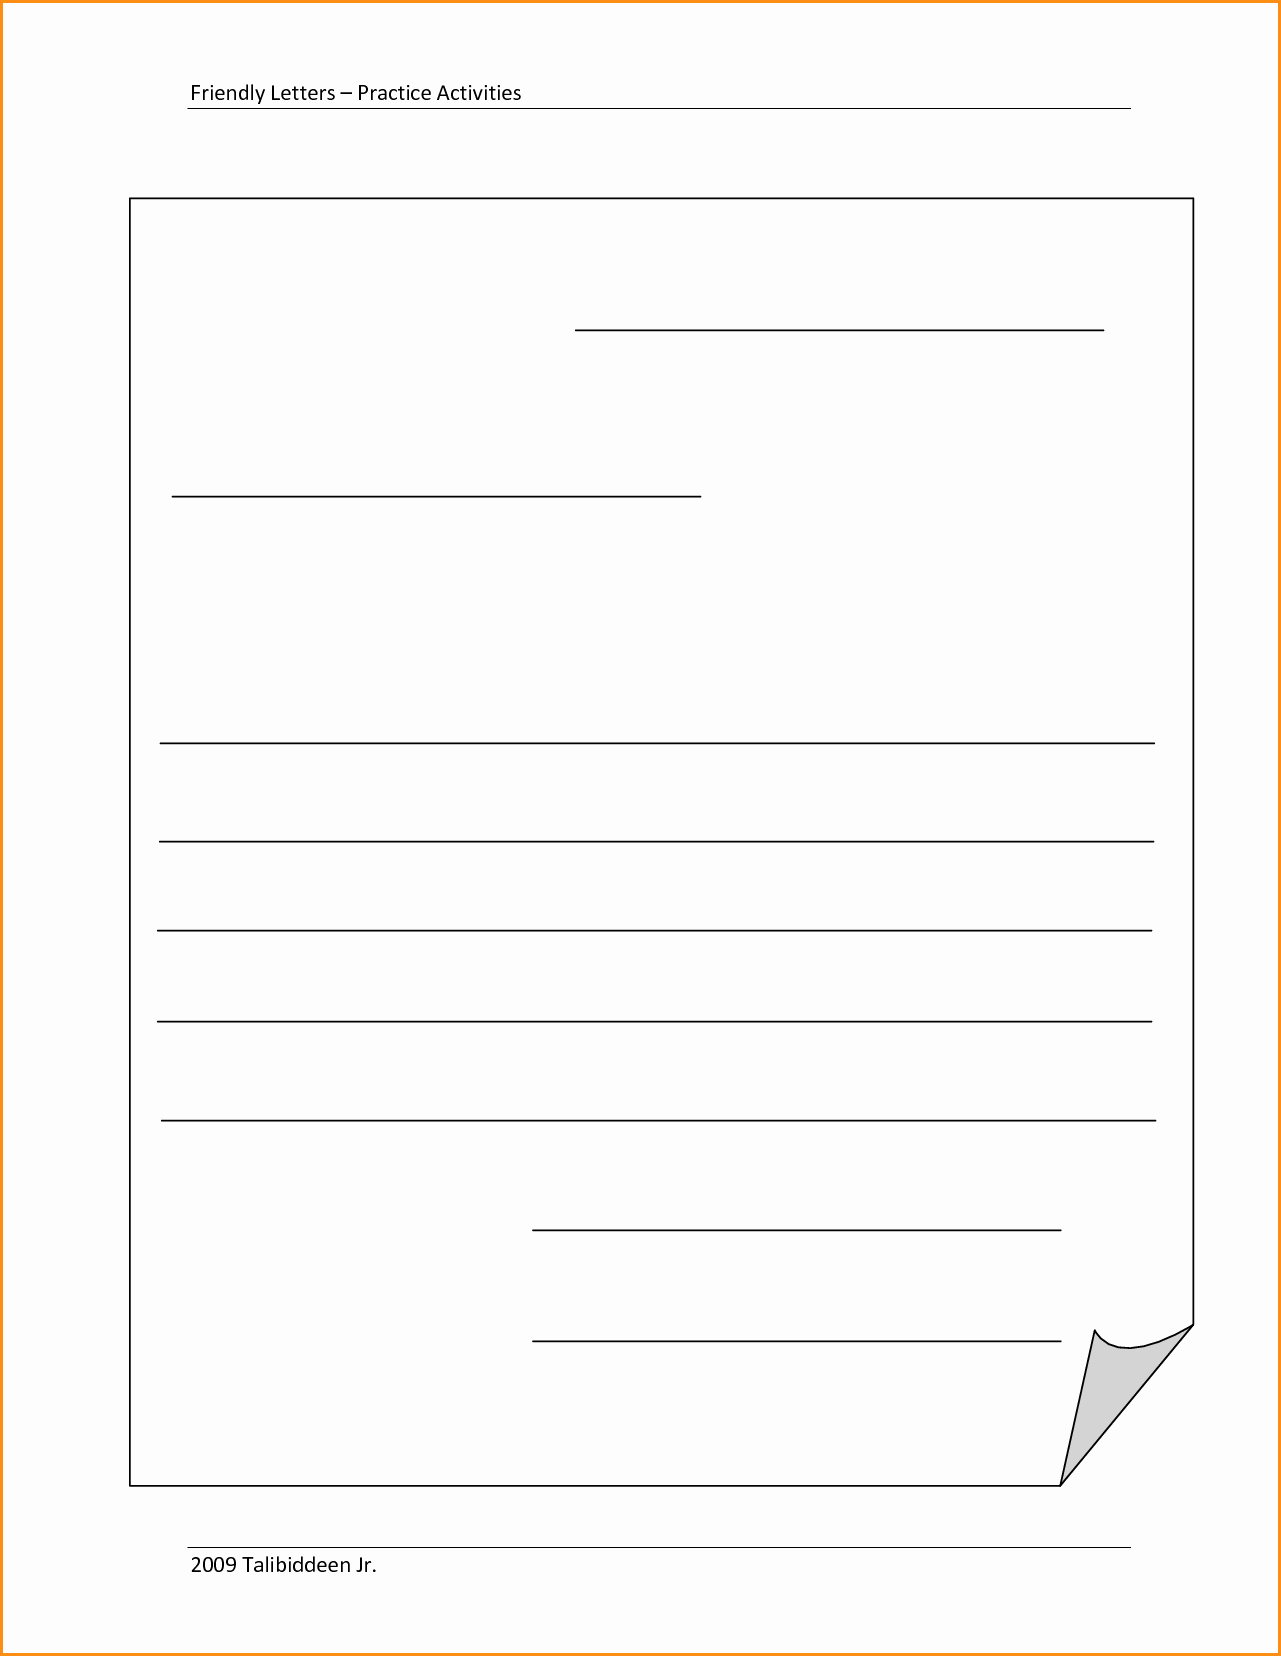 Template Of A Business Letter Beautiful 9 Friendly Letter format Printable